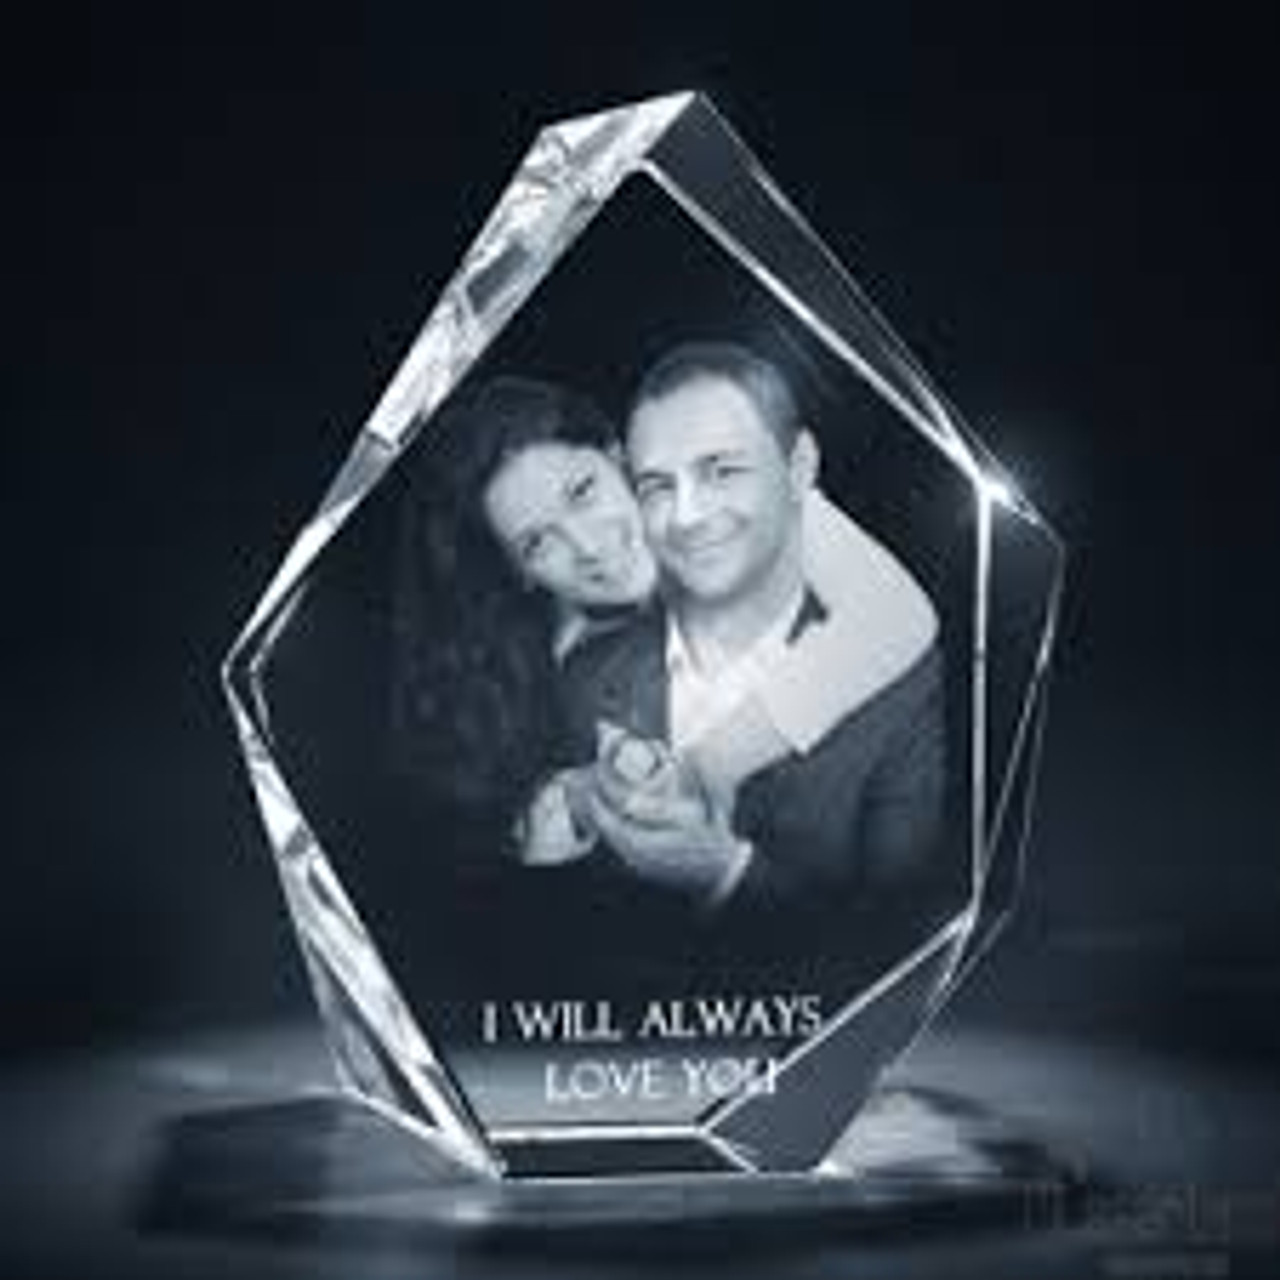 Iceberg Shaped Award or Memorial Crystal  - 3 sizes available